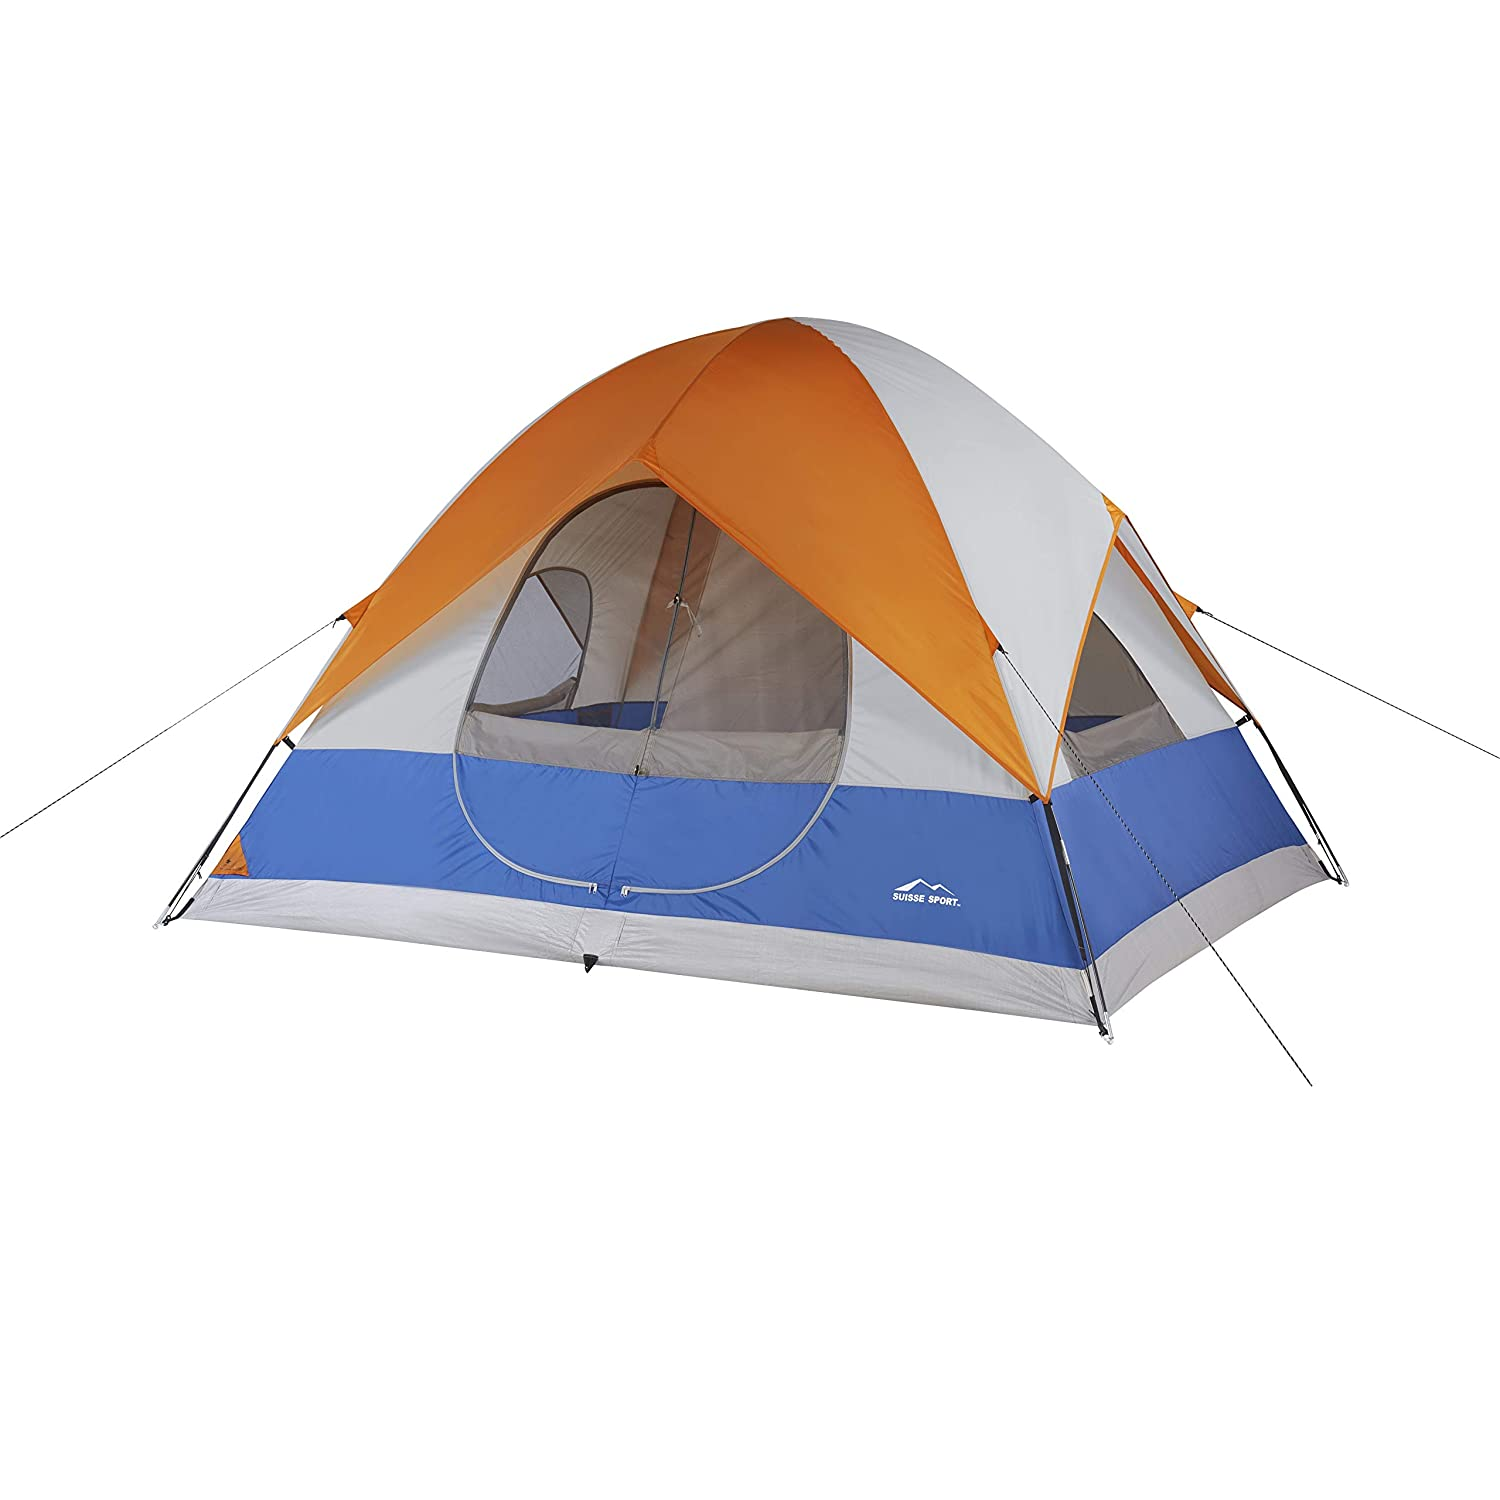 Best Tents with a Tall Center Height